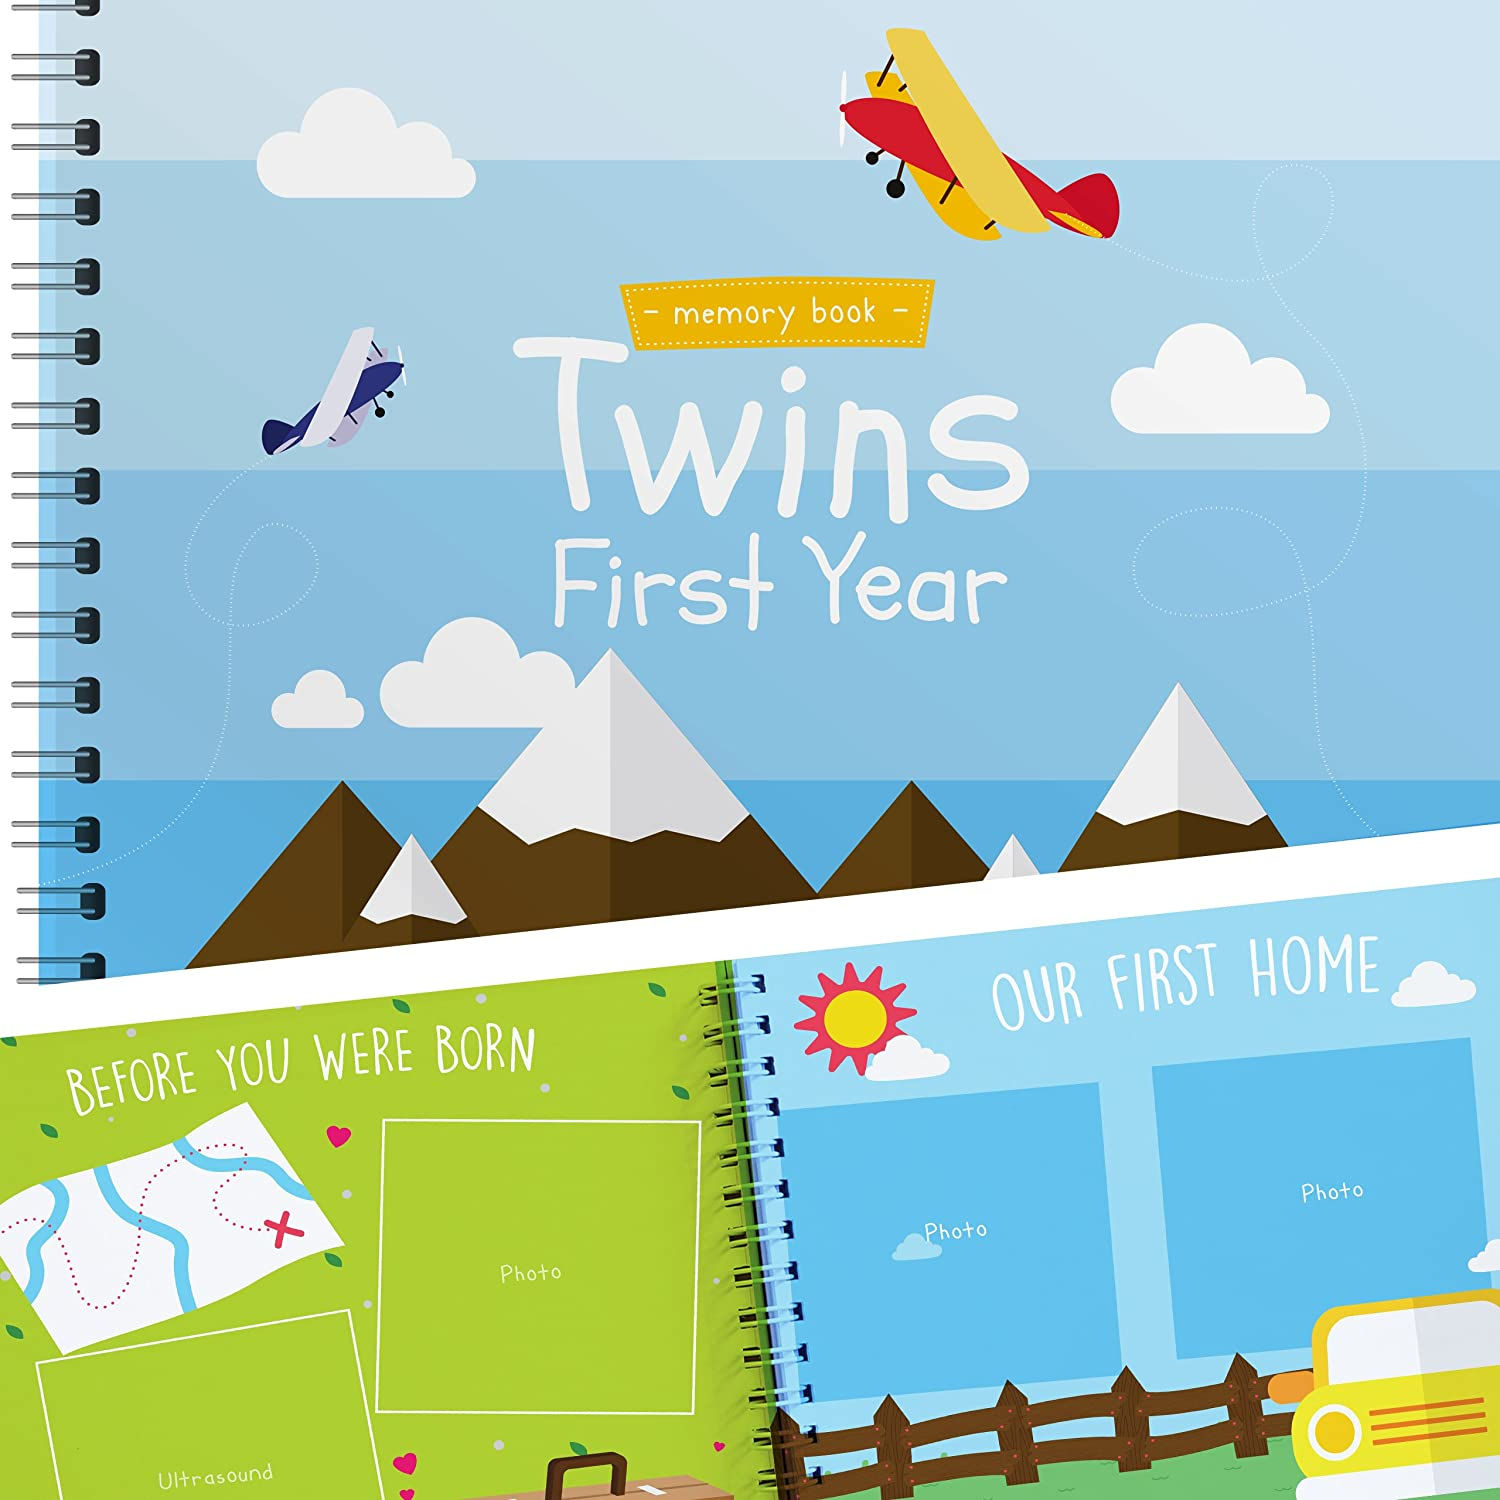 Baby Memory Book for Twins - The Only Baby Keepsake Journal for Documenting Your Twin's First Year! - Butterfly Edition Unconditional Rosie TWINGIRLSJUNTOS